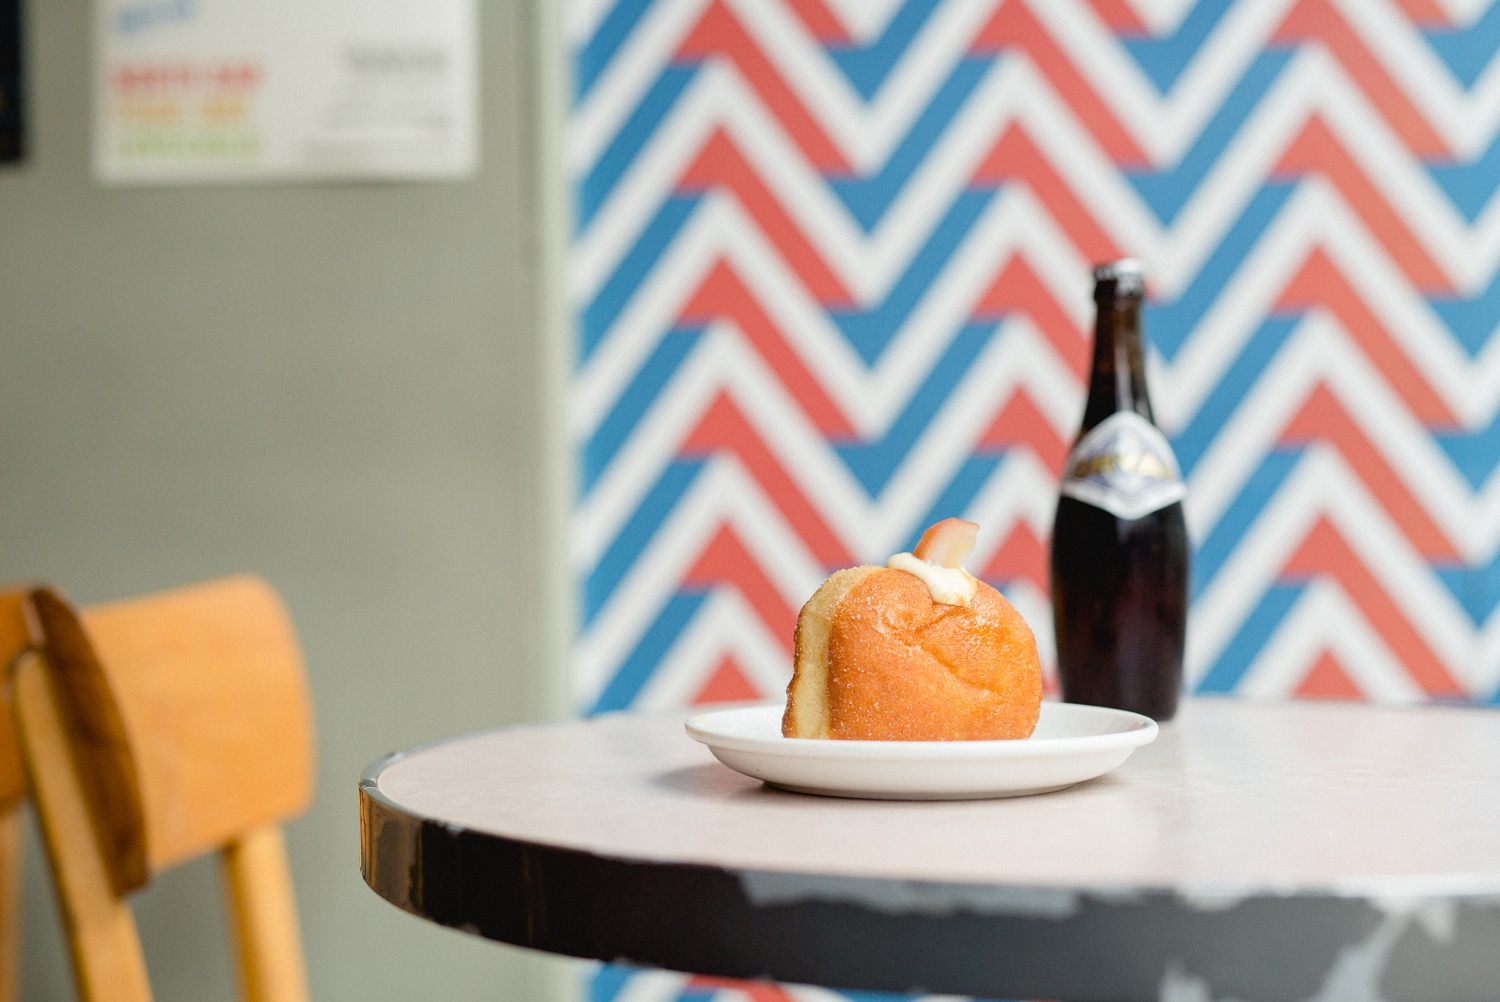 Donut and beer pairing at North Bar Leeds